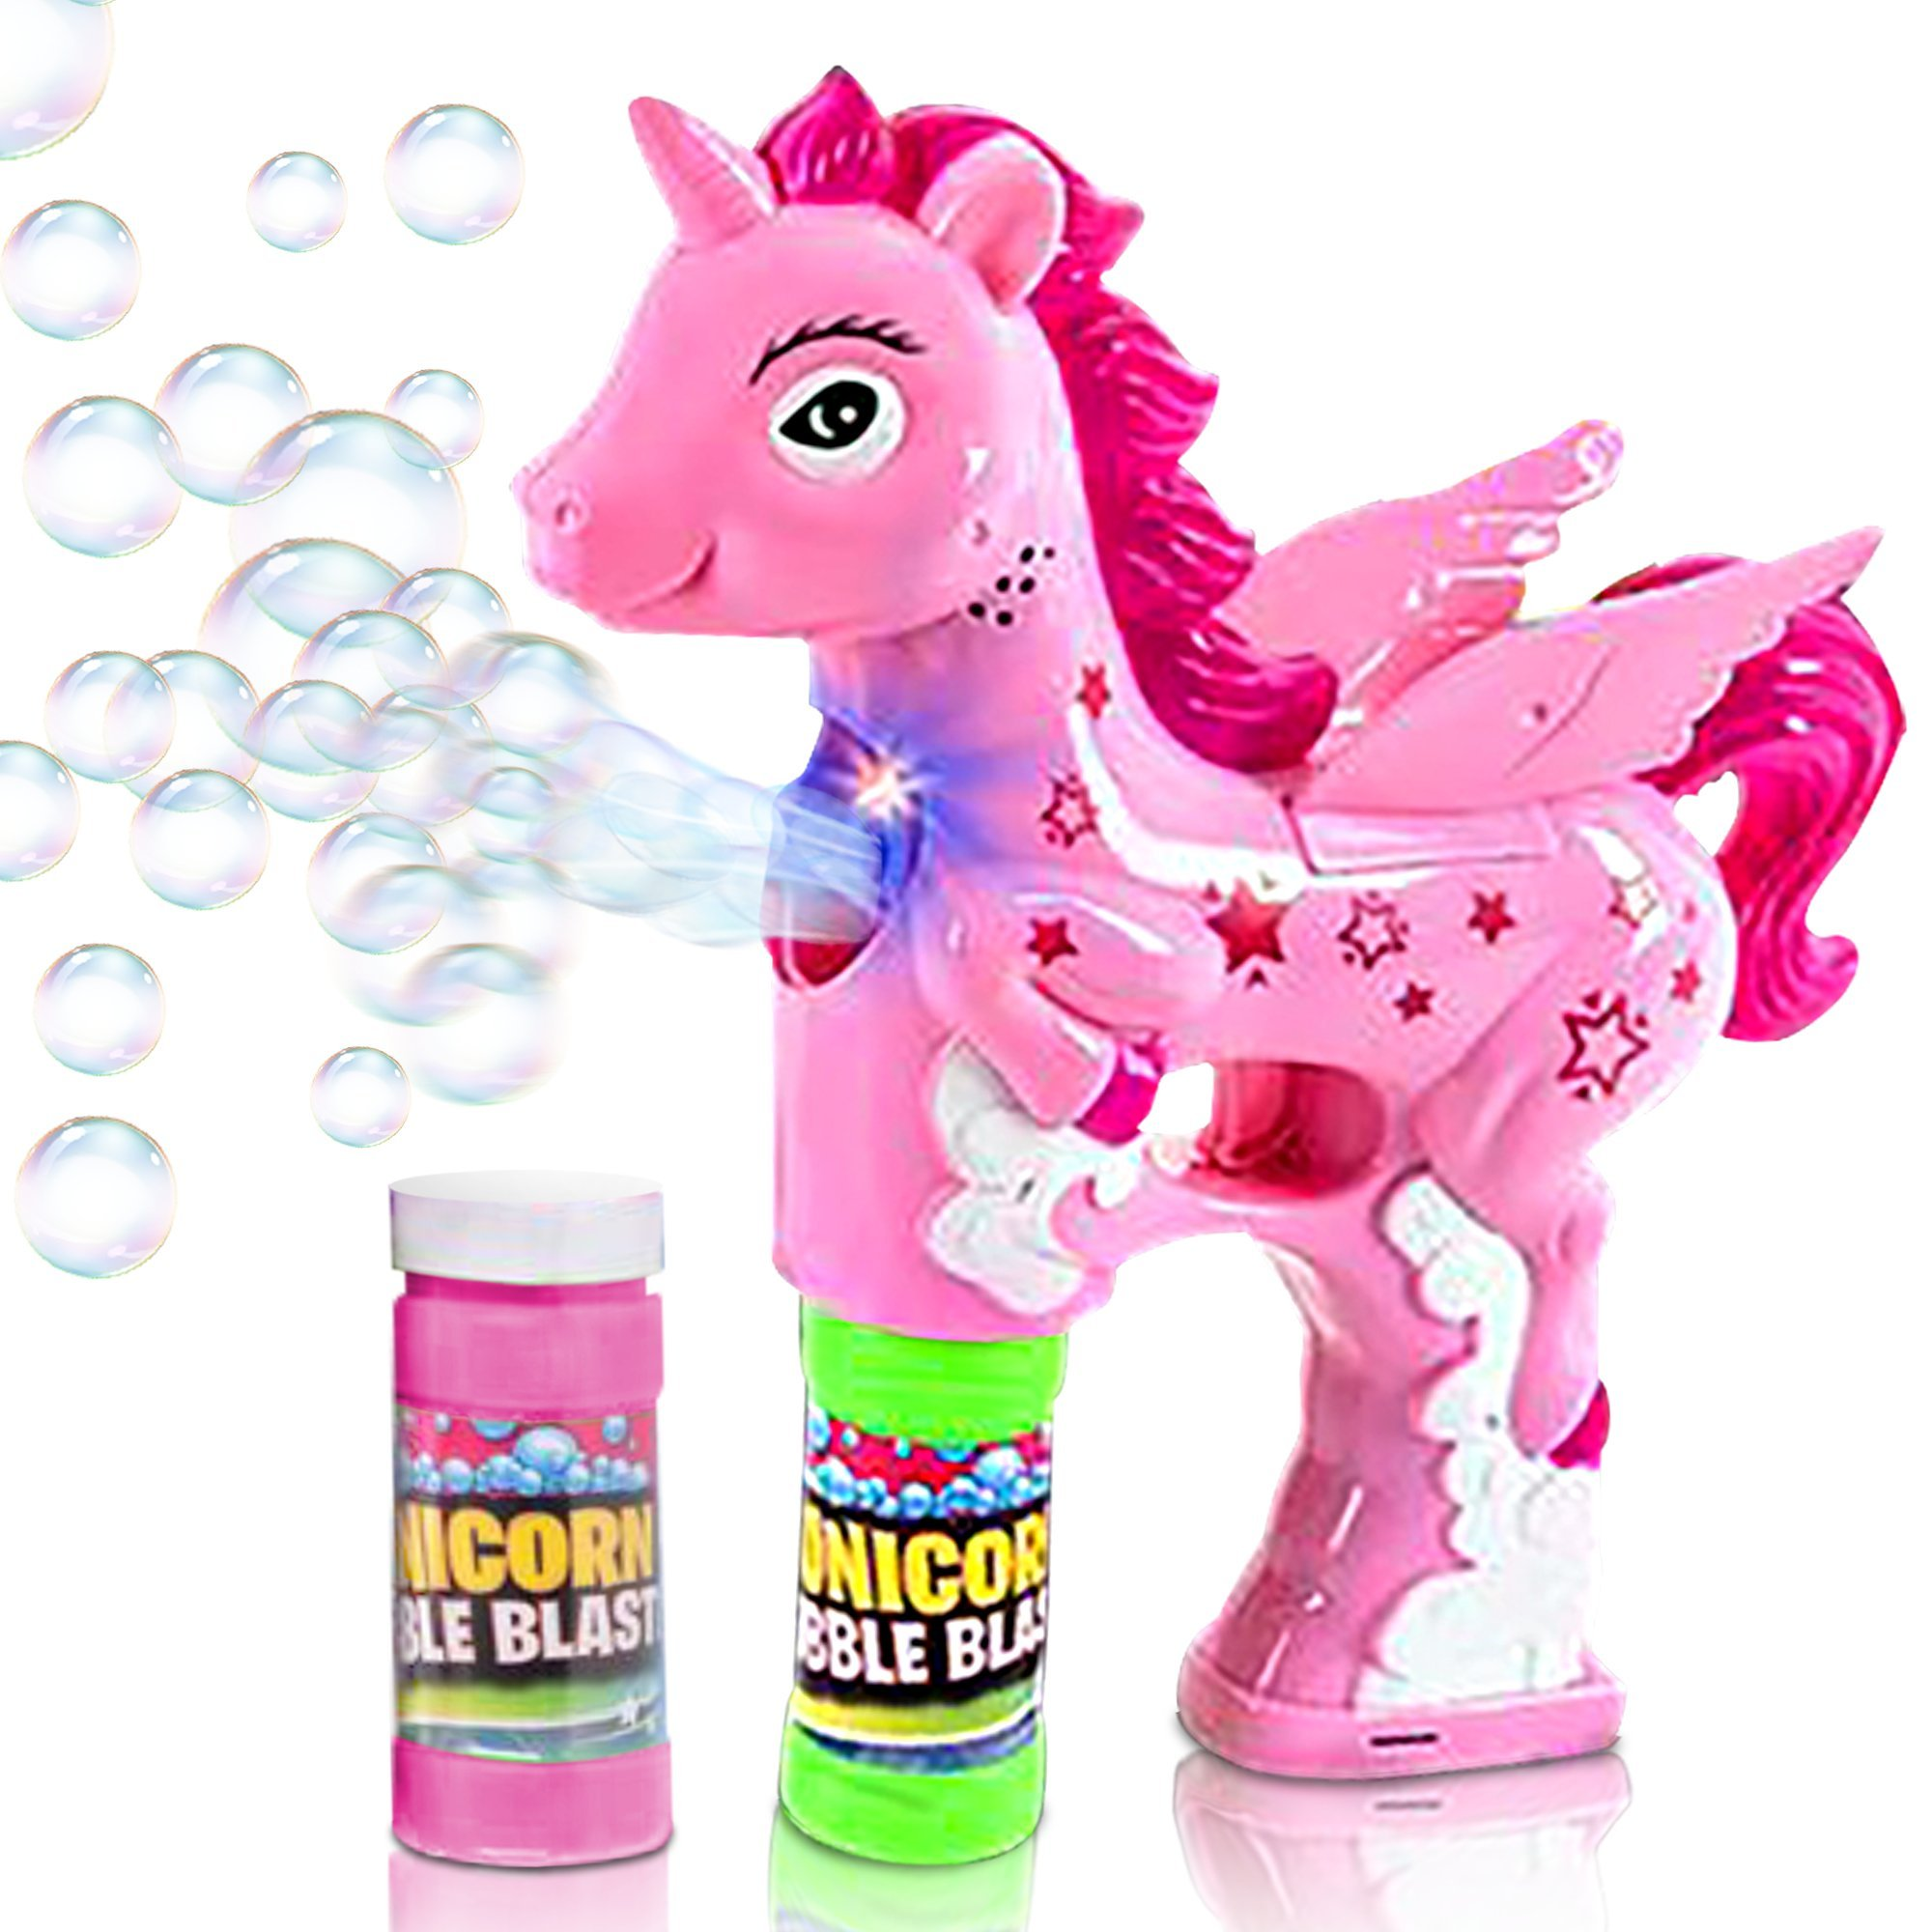 ArtCreativity Unicorn Bubble Blaster with Light and Sound | Includes 1 Bubble Gun & 2 Bottles of Bubble Solution & Batteries Installed, for Girls and Boys (Colors May Vary)